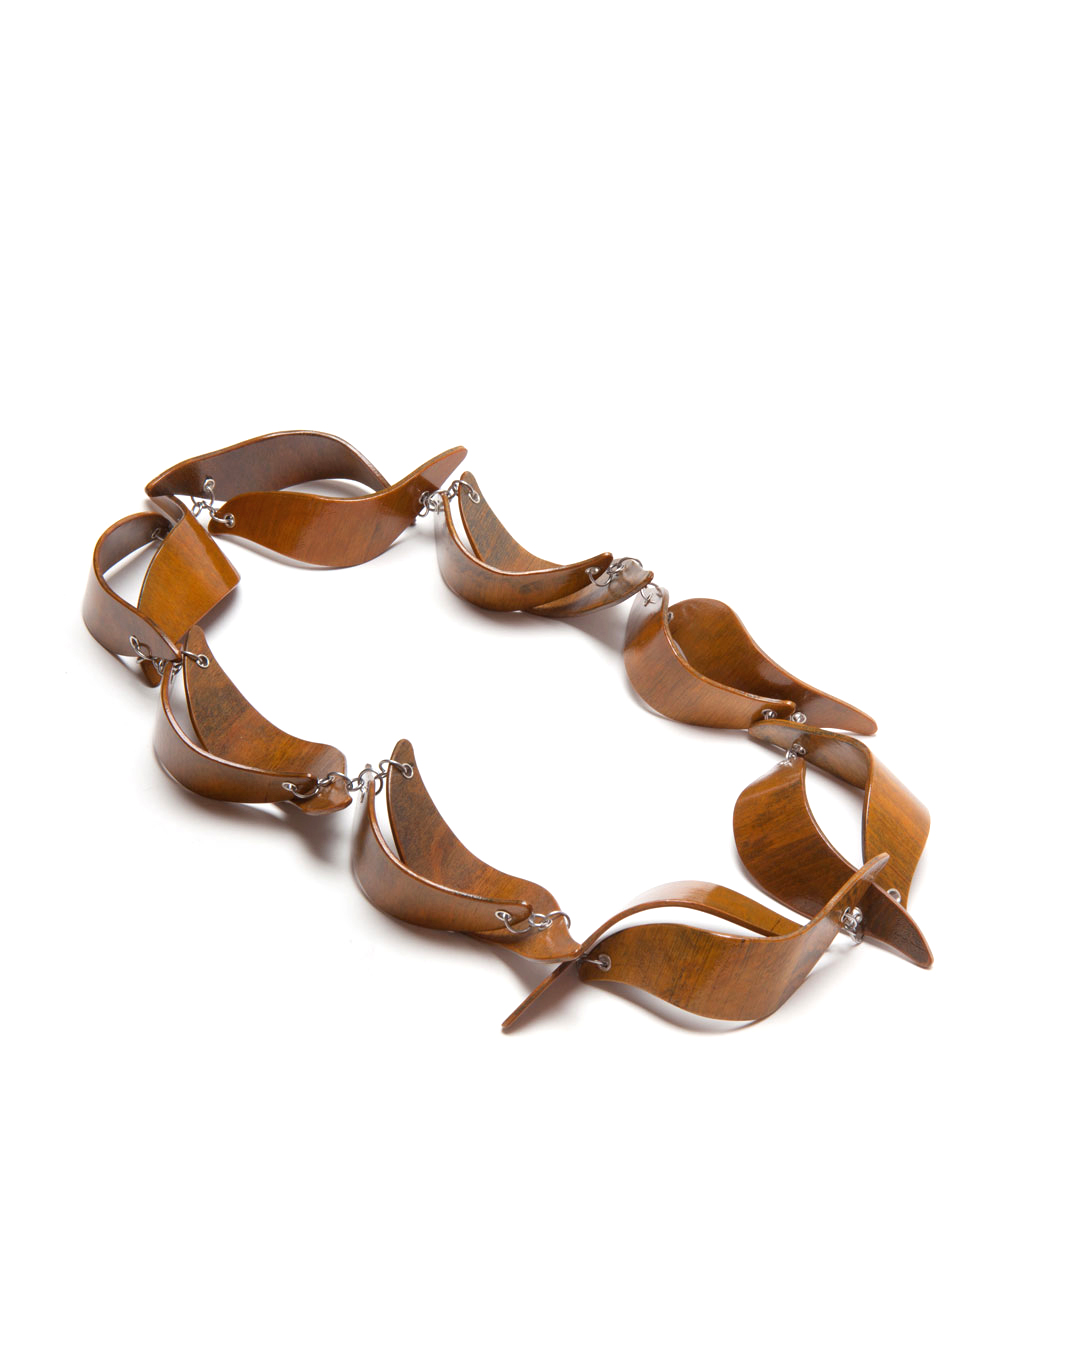 Antje Bräuer, Baroque Waves I , 2014, necklace; plywood, silver, steel, 450 x 300 x 42 mm, €2180